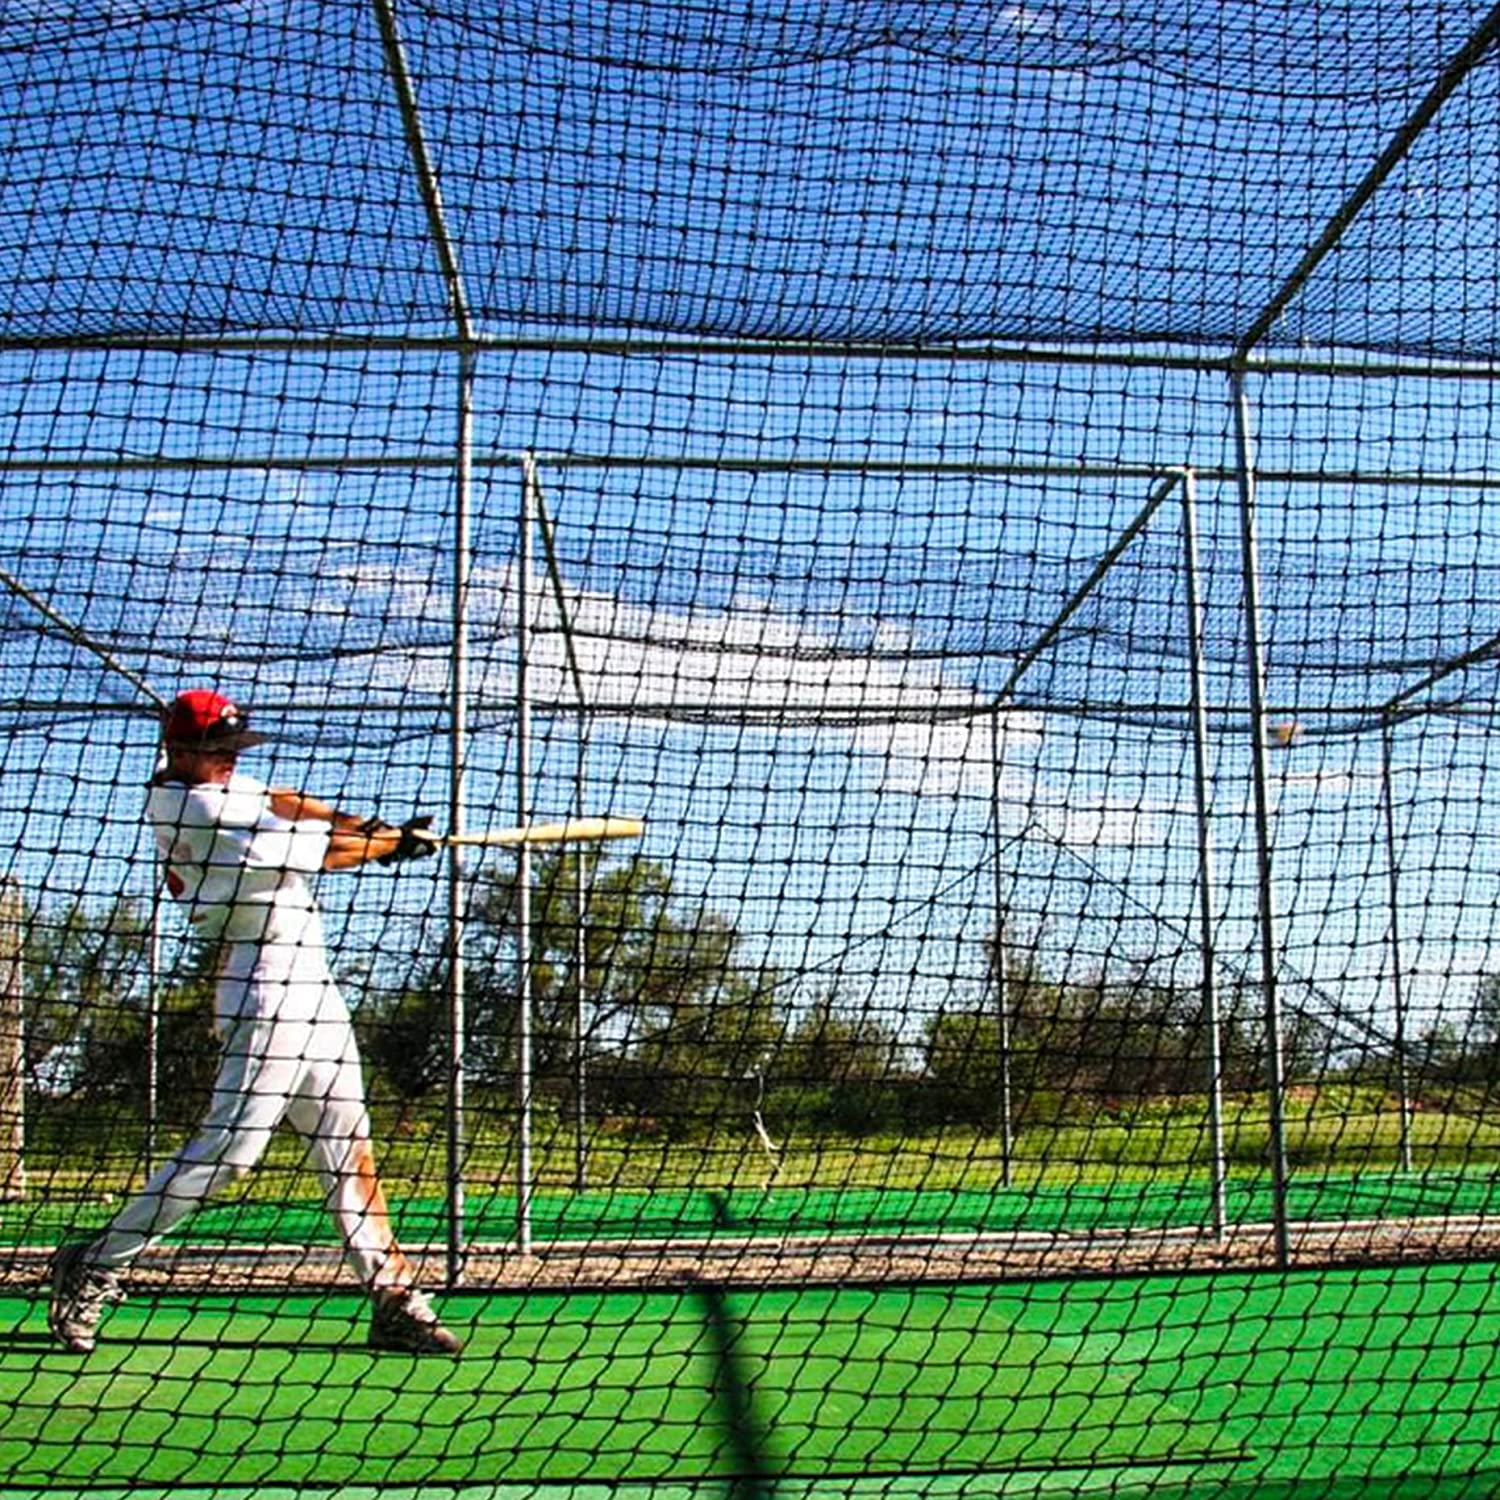 Baseball Batting Cage Nets [12 Sizes] | Professional Fully Enclosed #42 Grade Heavy Duty HDPP Netting | Baseball & Softball Cage Netting | Hitting Cage Net